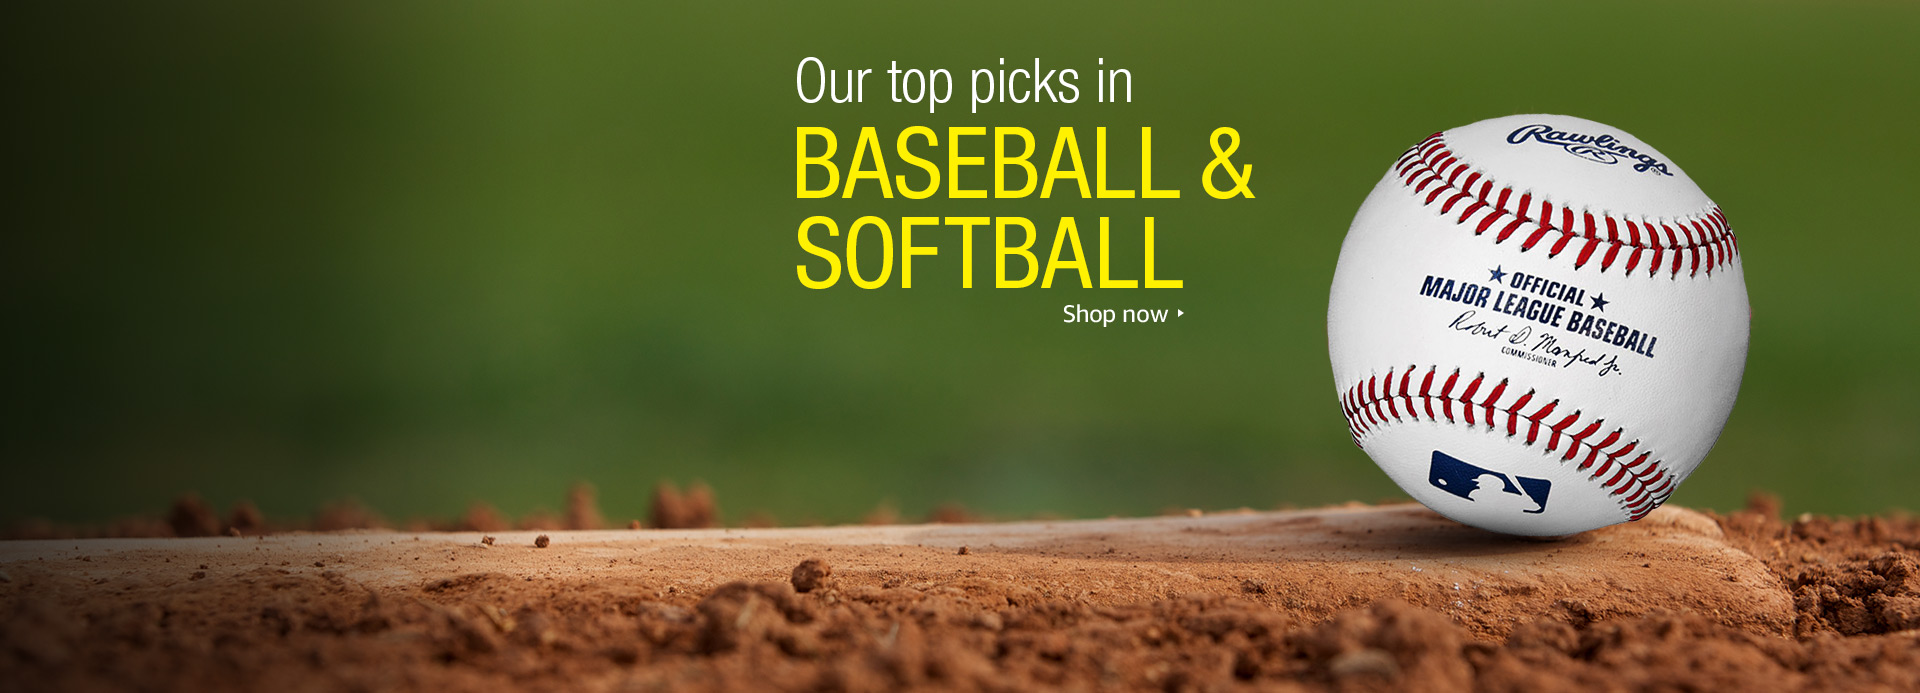 Baseball | Amazon.com: Bats, Mitts & Baseballs